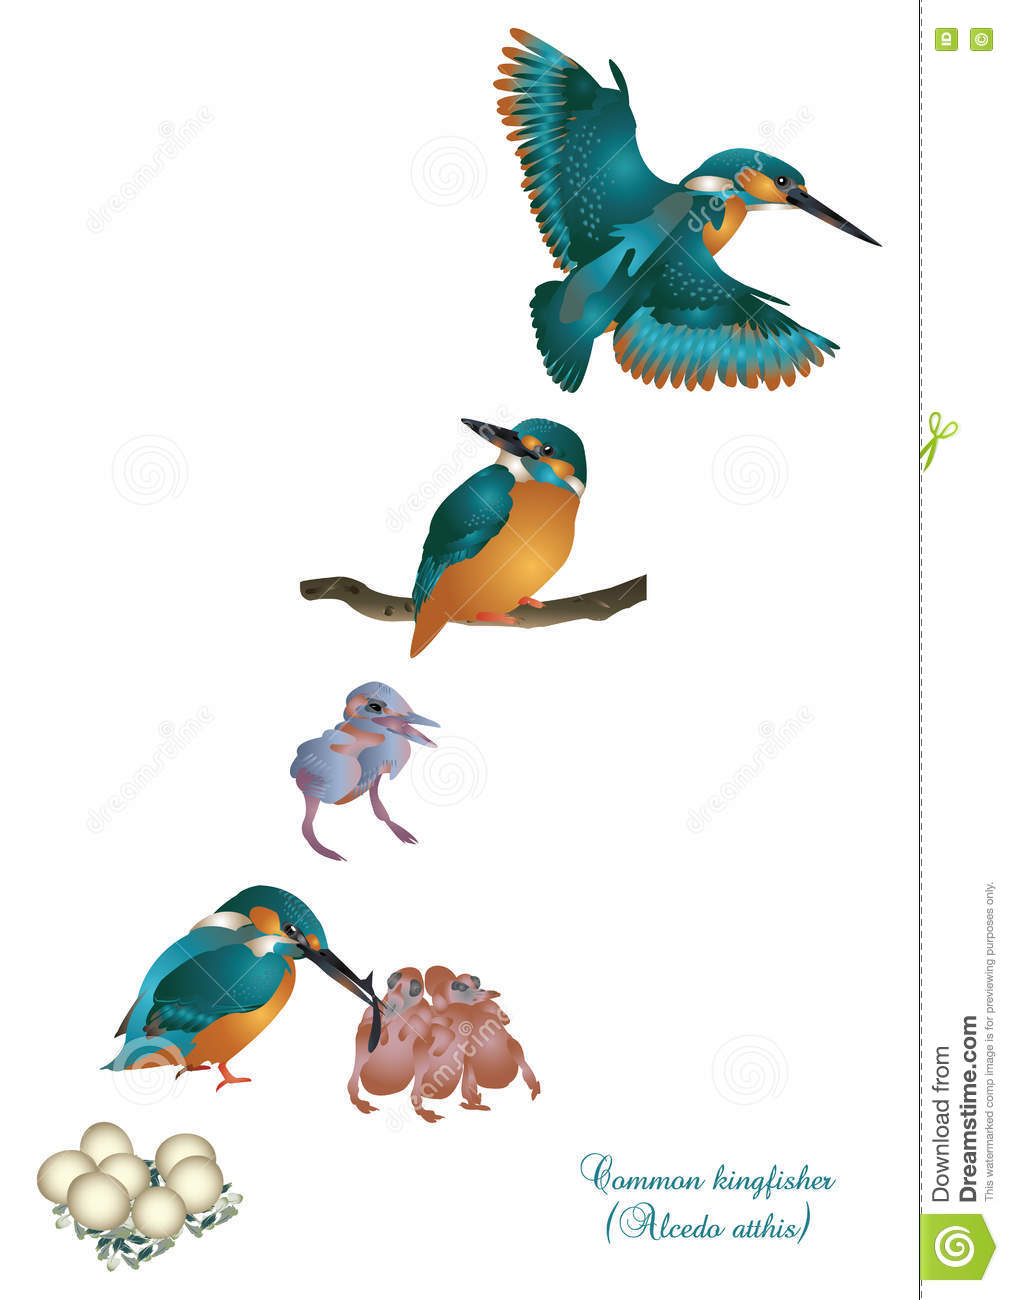 kingfisher lifecycle The azure kingfisher is a small kingfisher with a long slender black bill and a short tail the head, neck, upper parts and breast sides are deep azure blue with a violet (purplish) sheen.